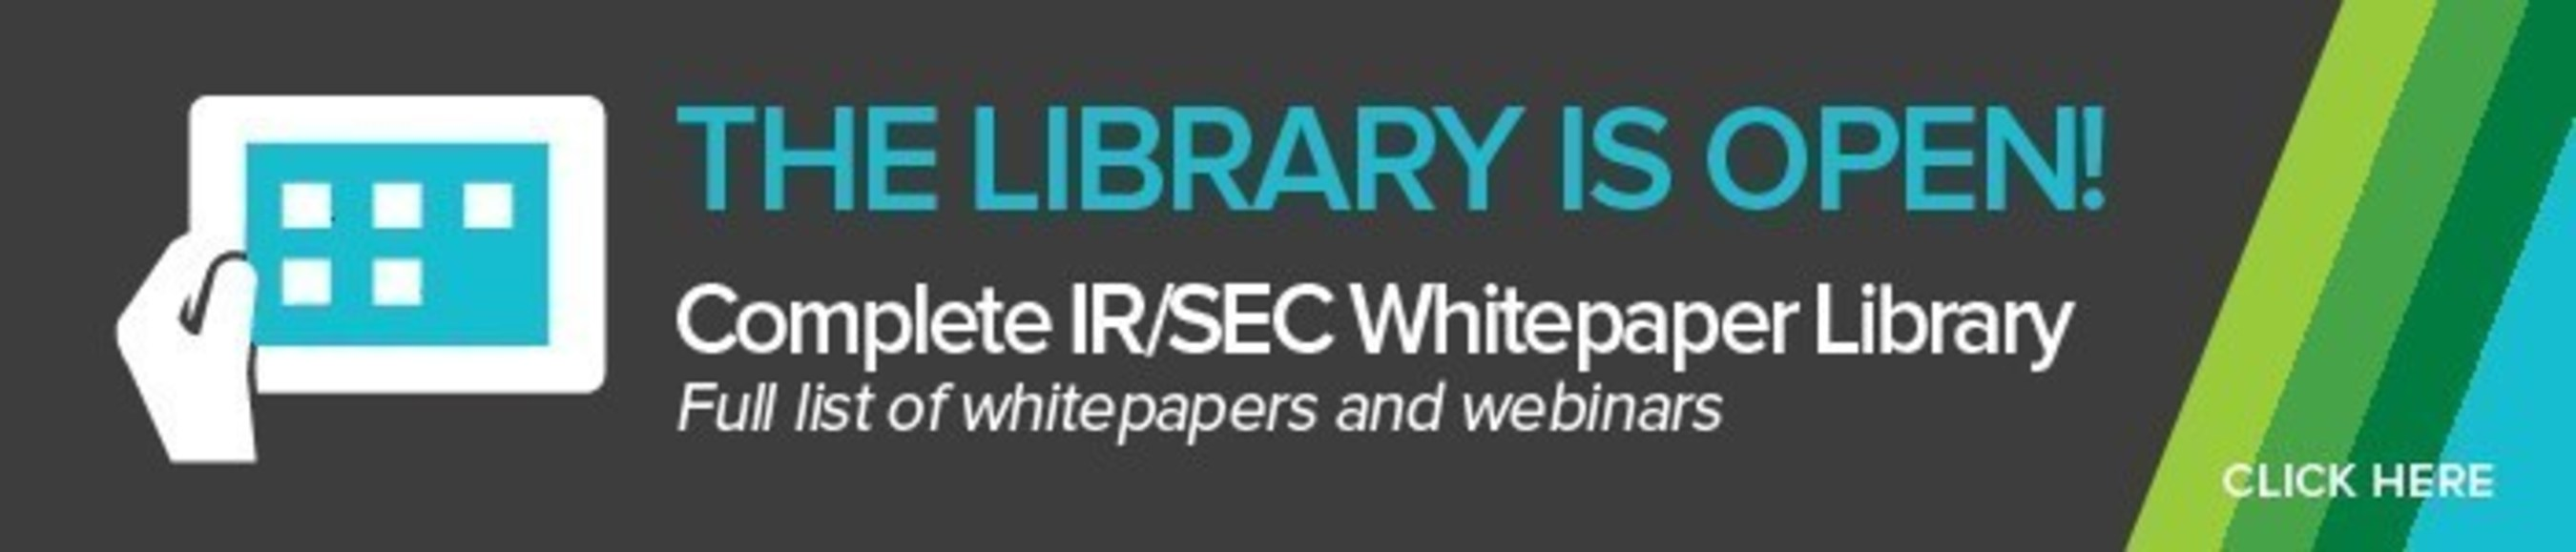 We have a rich library of whitepapers and webinars discussing regulatory compliance and shareholder communications at irblog.prnewswire.com